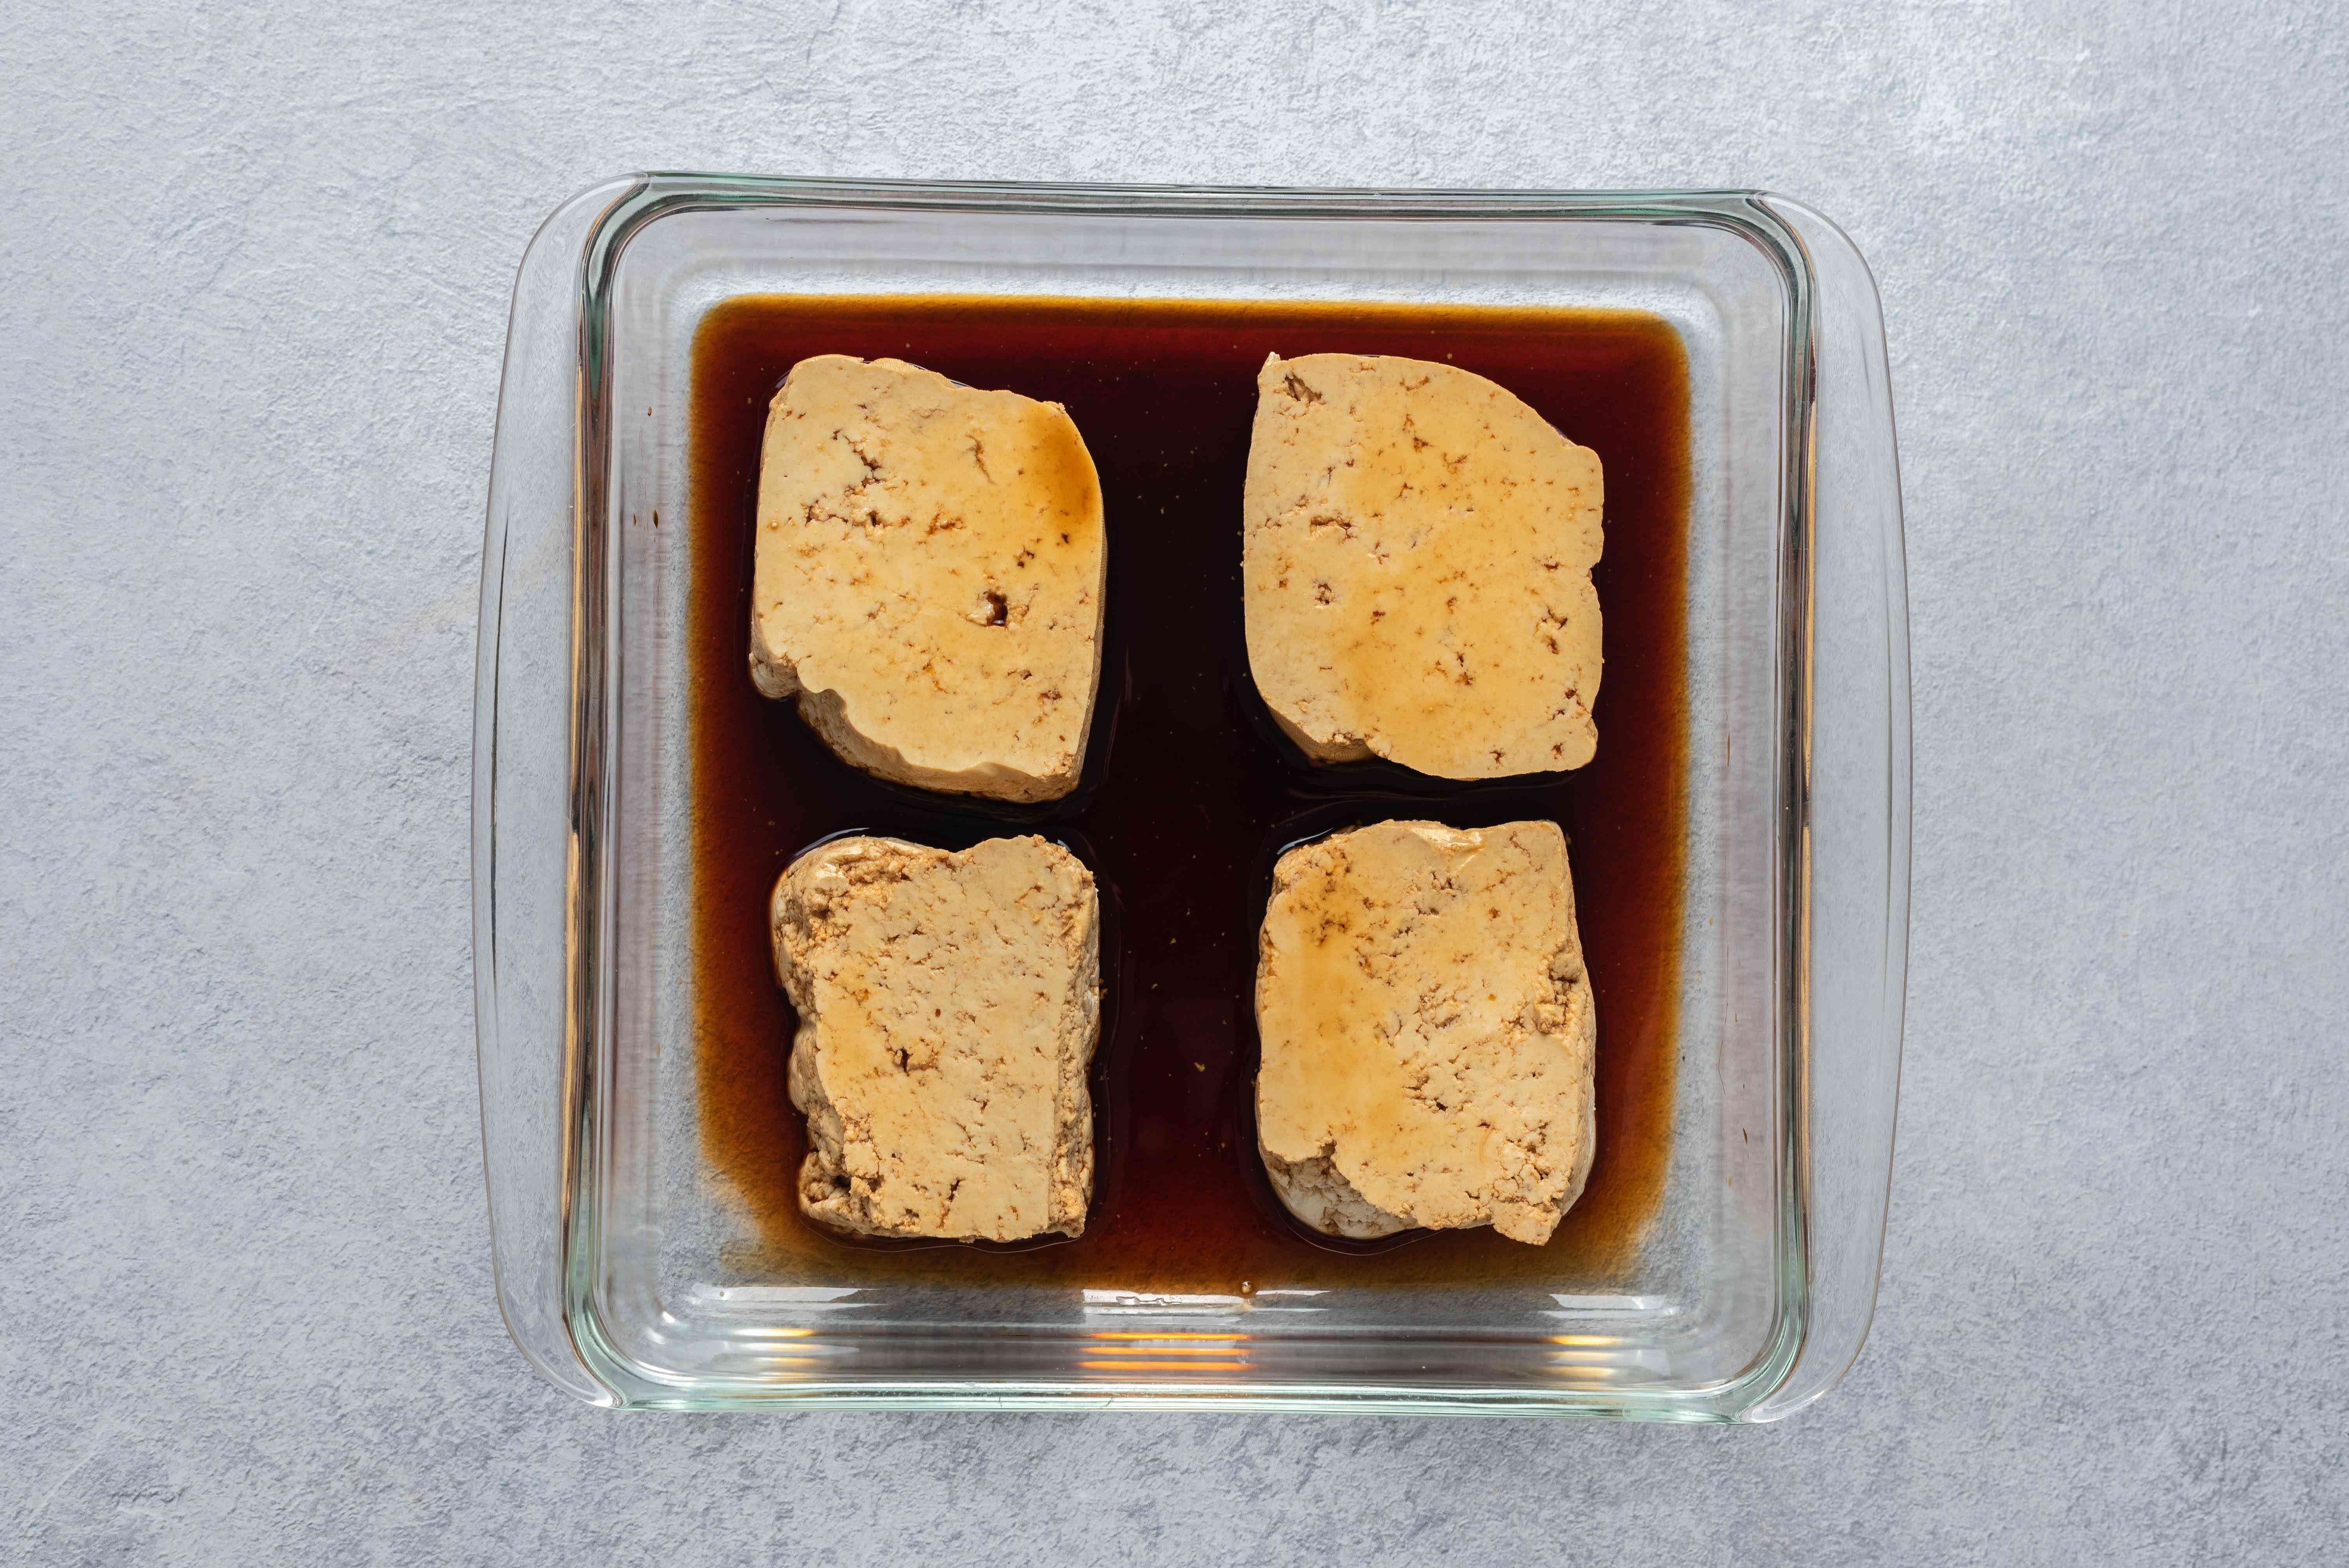 Tofu in a shallow dish with soy sauce